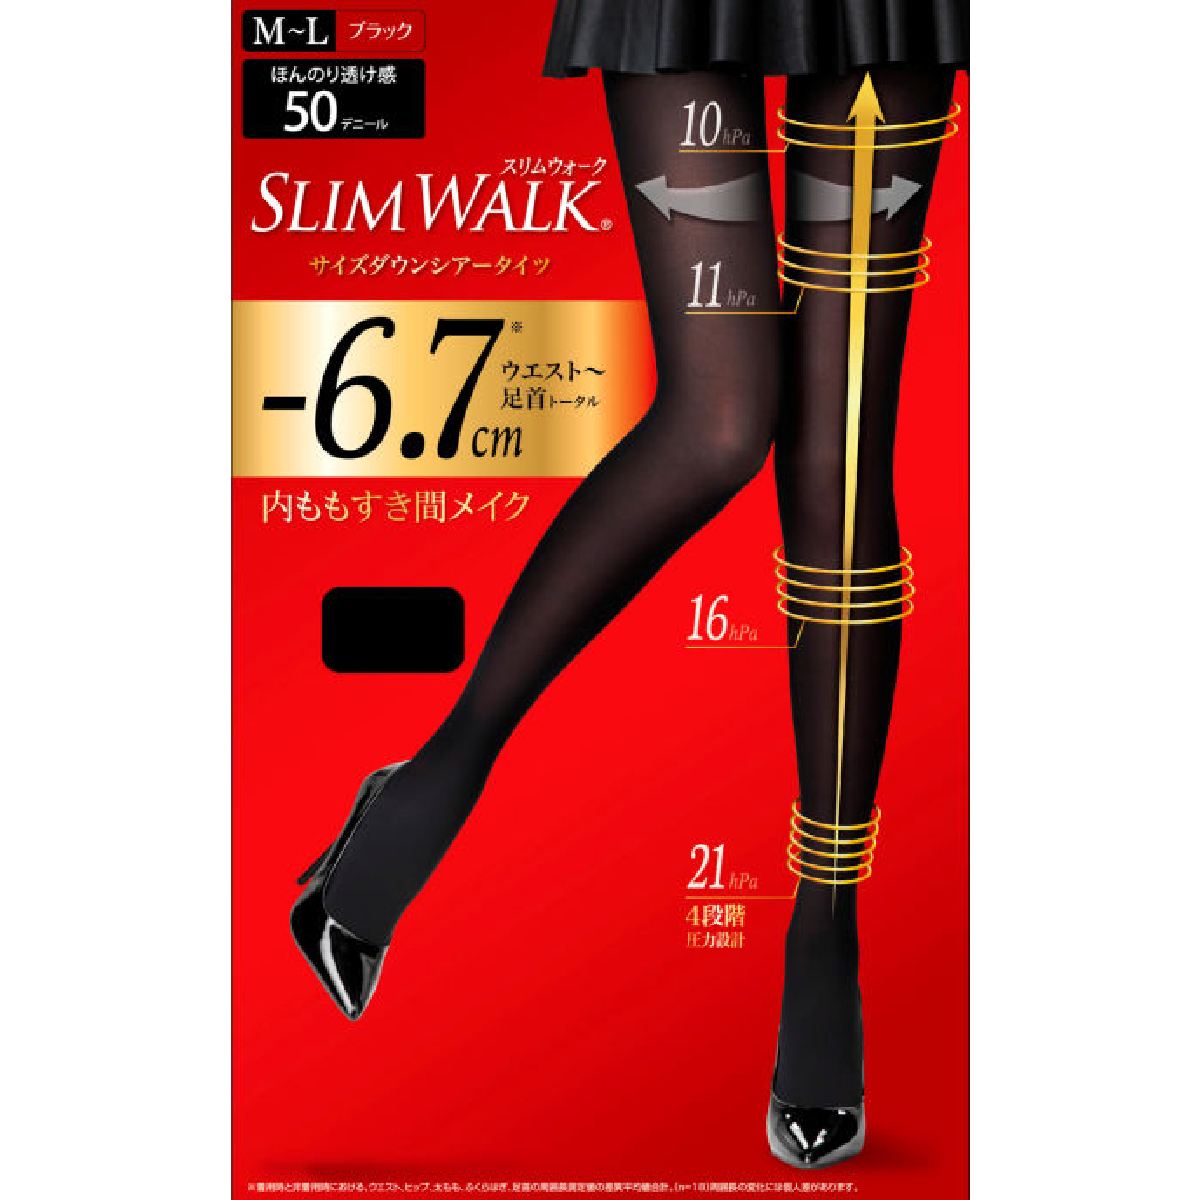 PH759 Compression Size Down Sheer Tights M-L